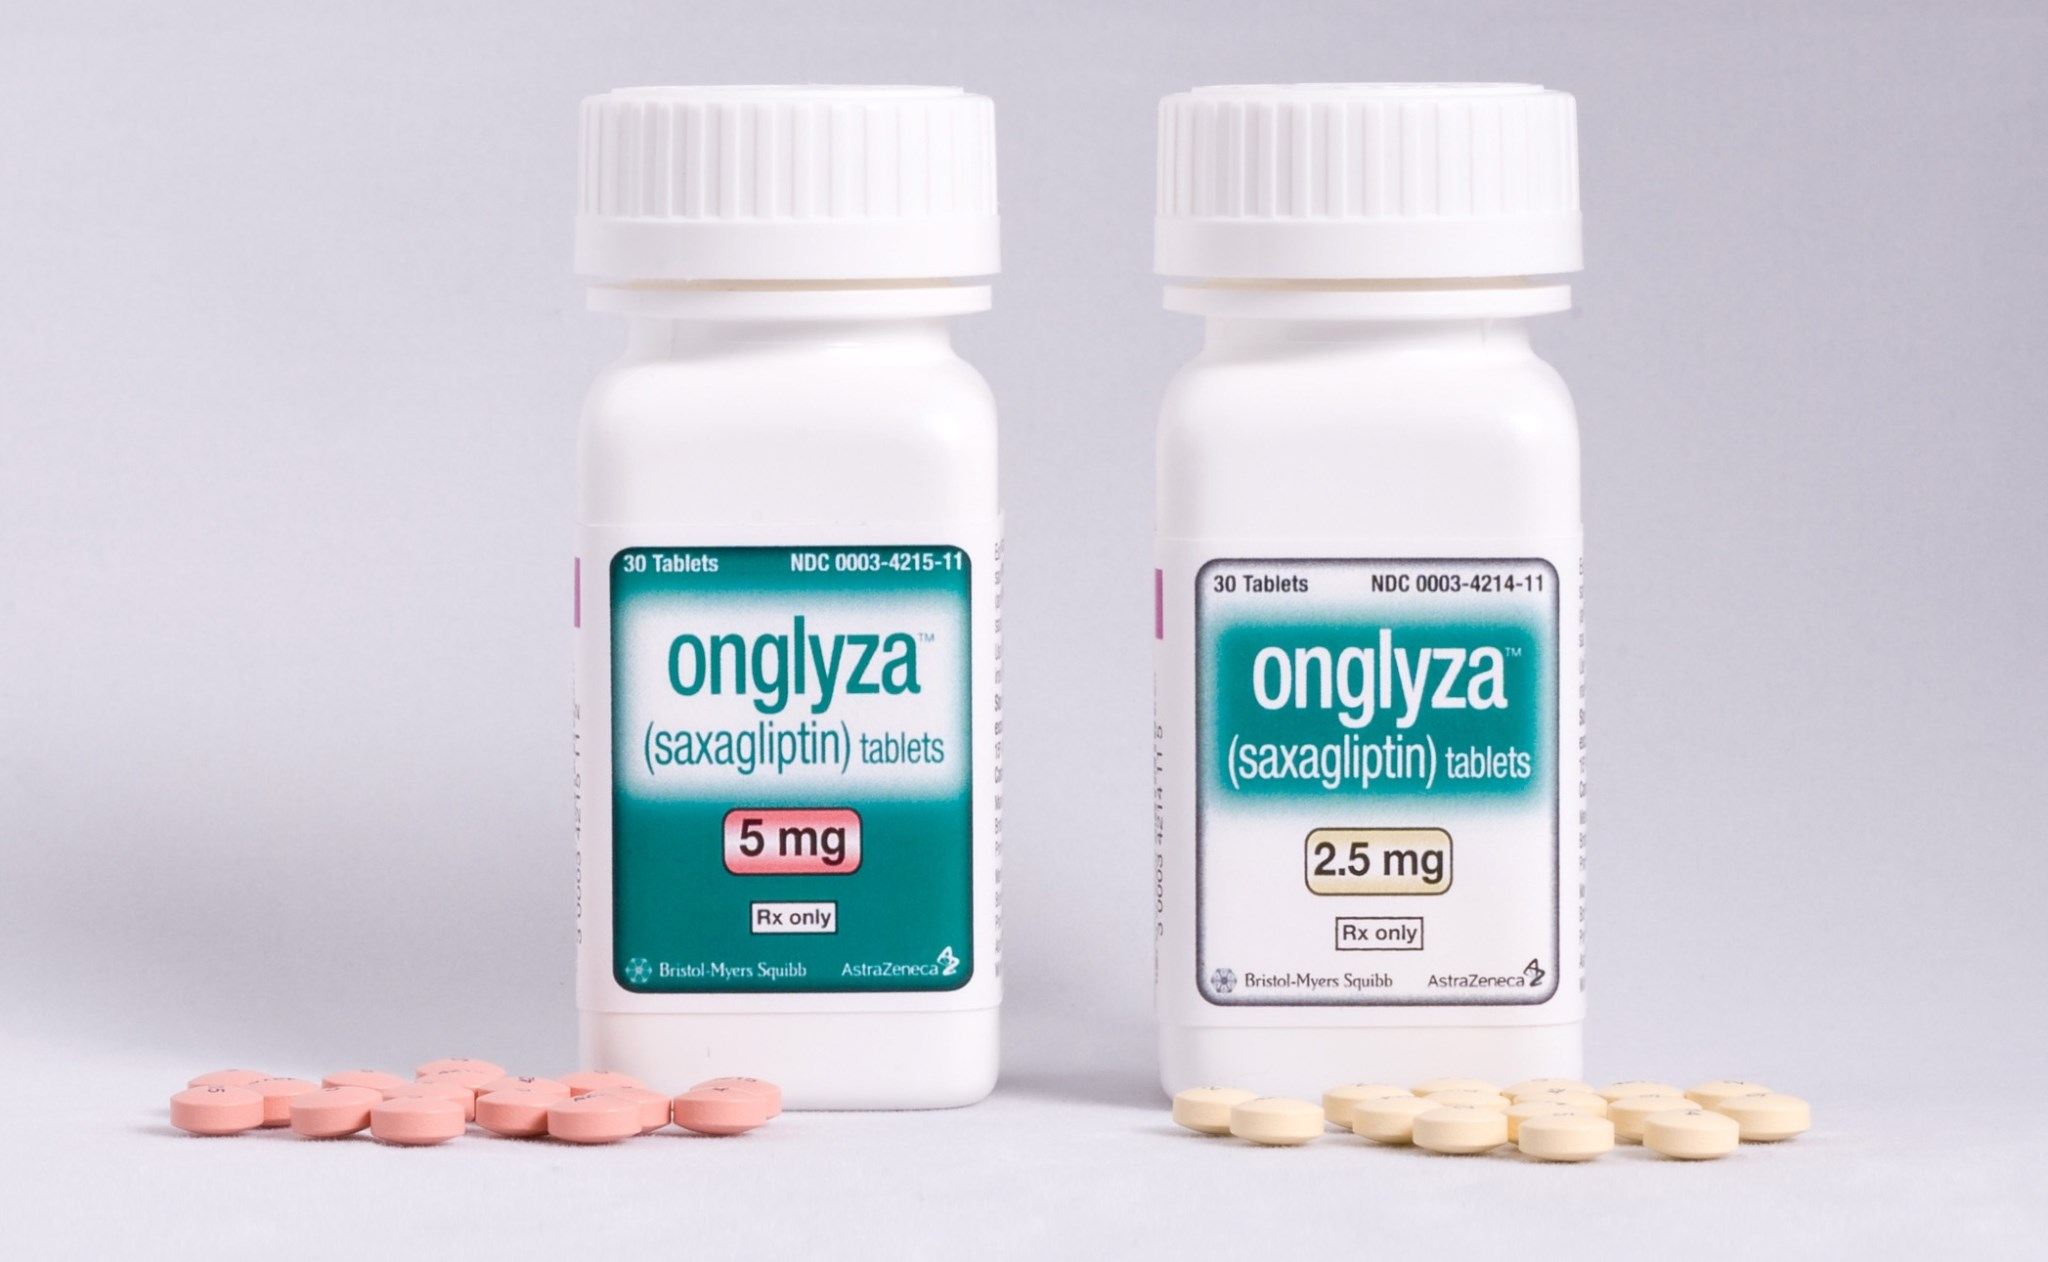 Express Scripts drops Onglyza from 2016 formulary over safety concerns